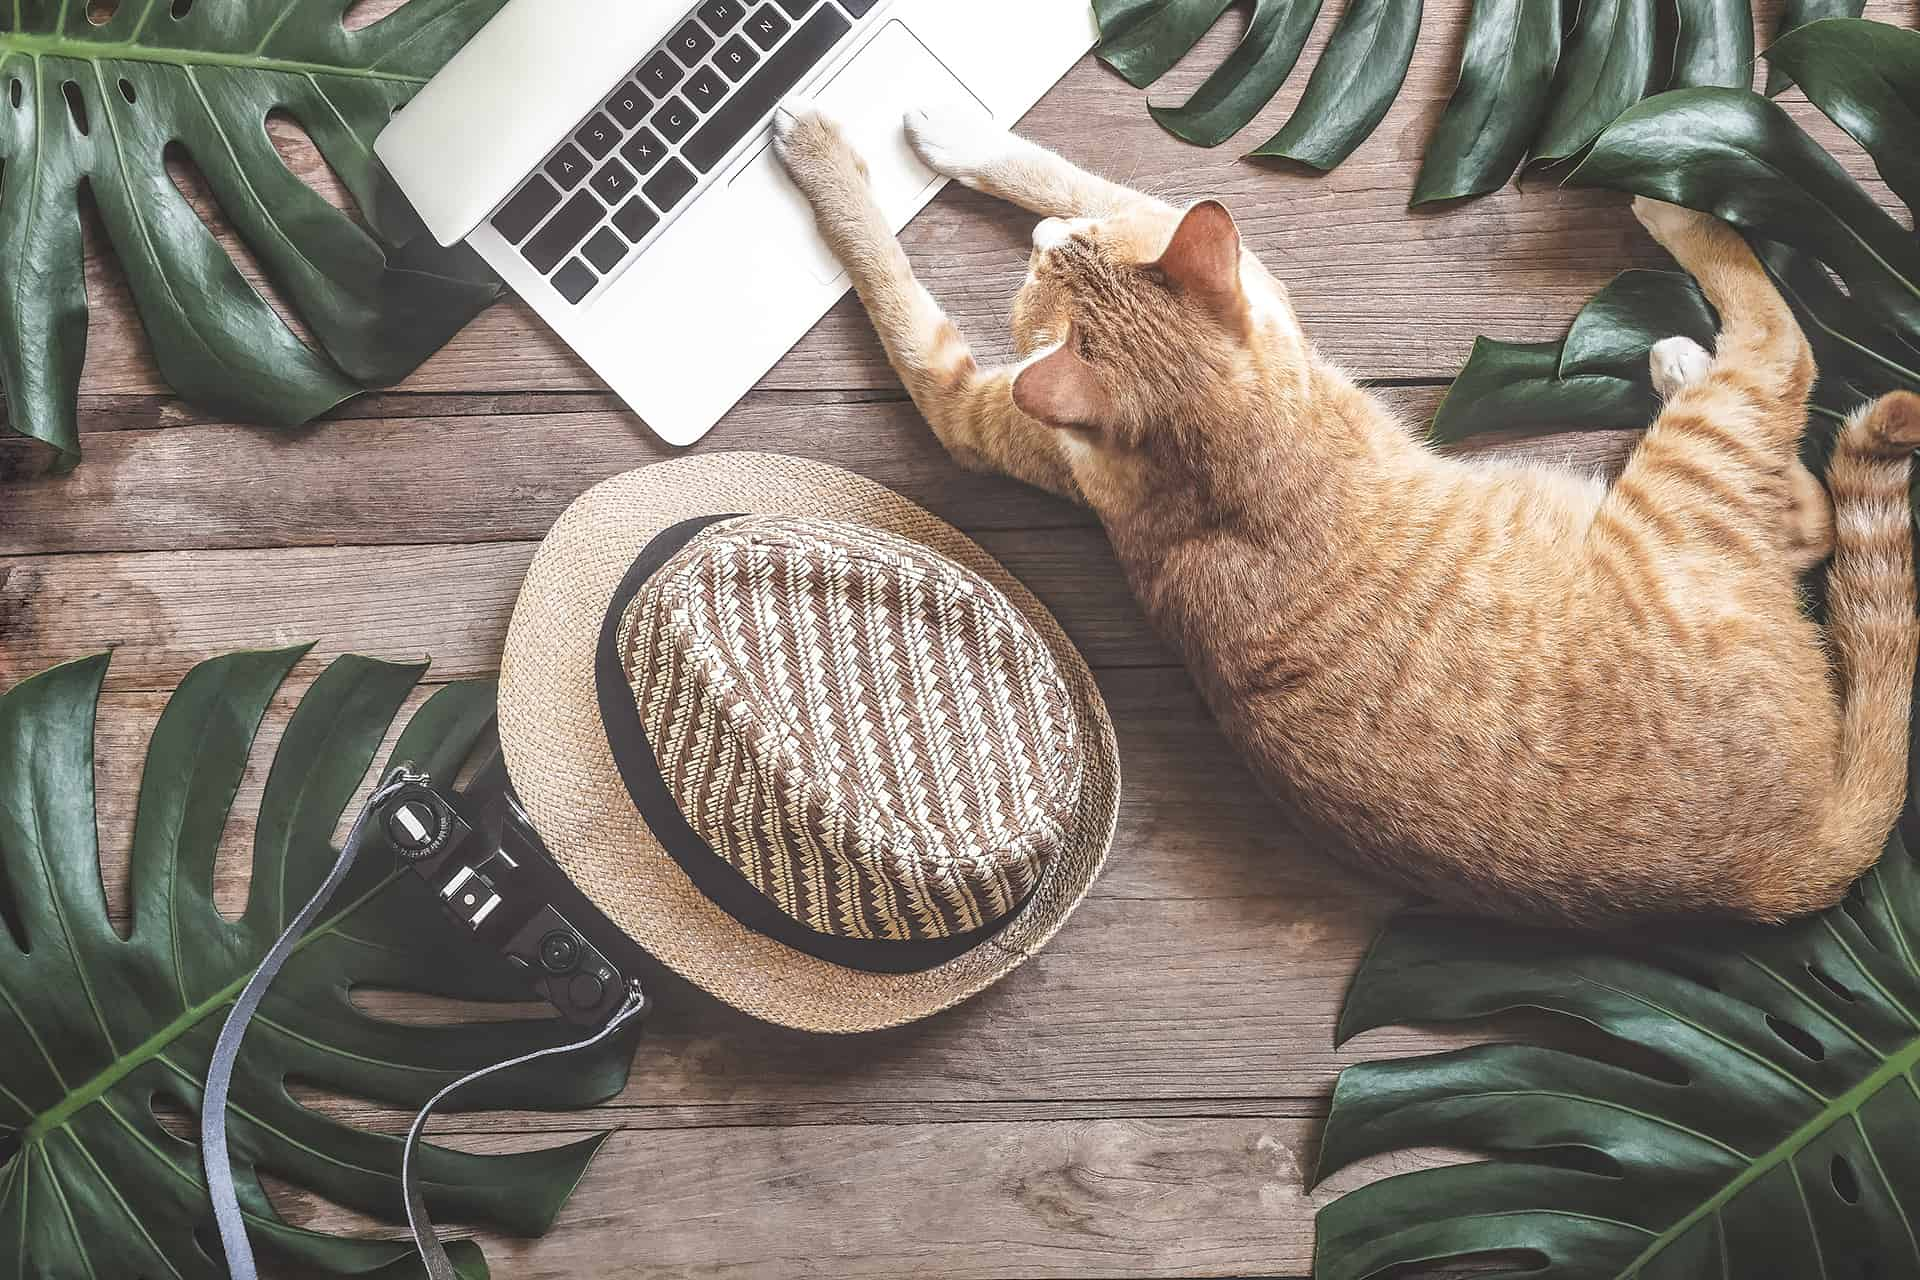 Forms - Whether you're a new client, boarding with us, or need to drop your kitty off for an appointment, filling out these forms will speed up the process.